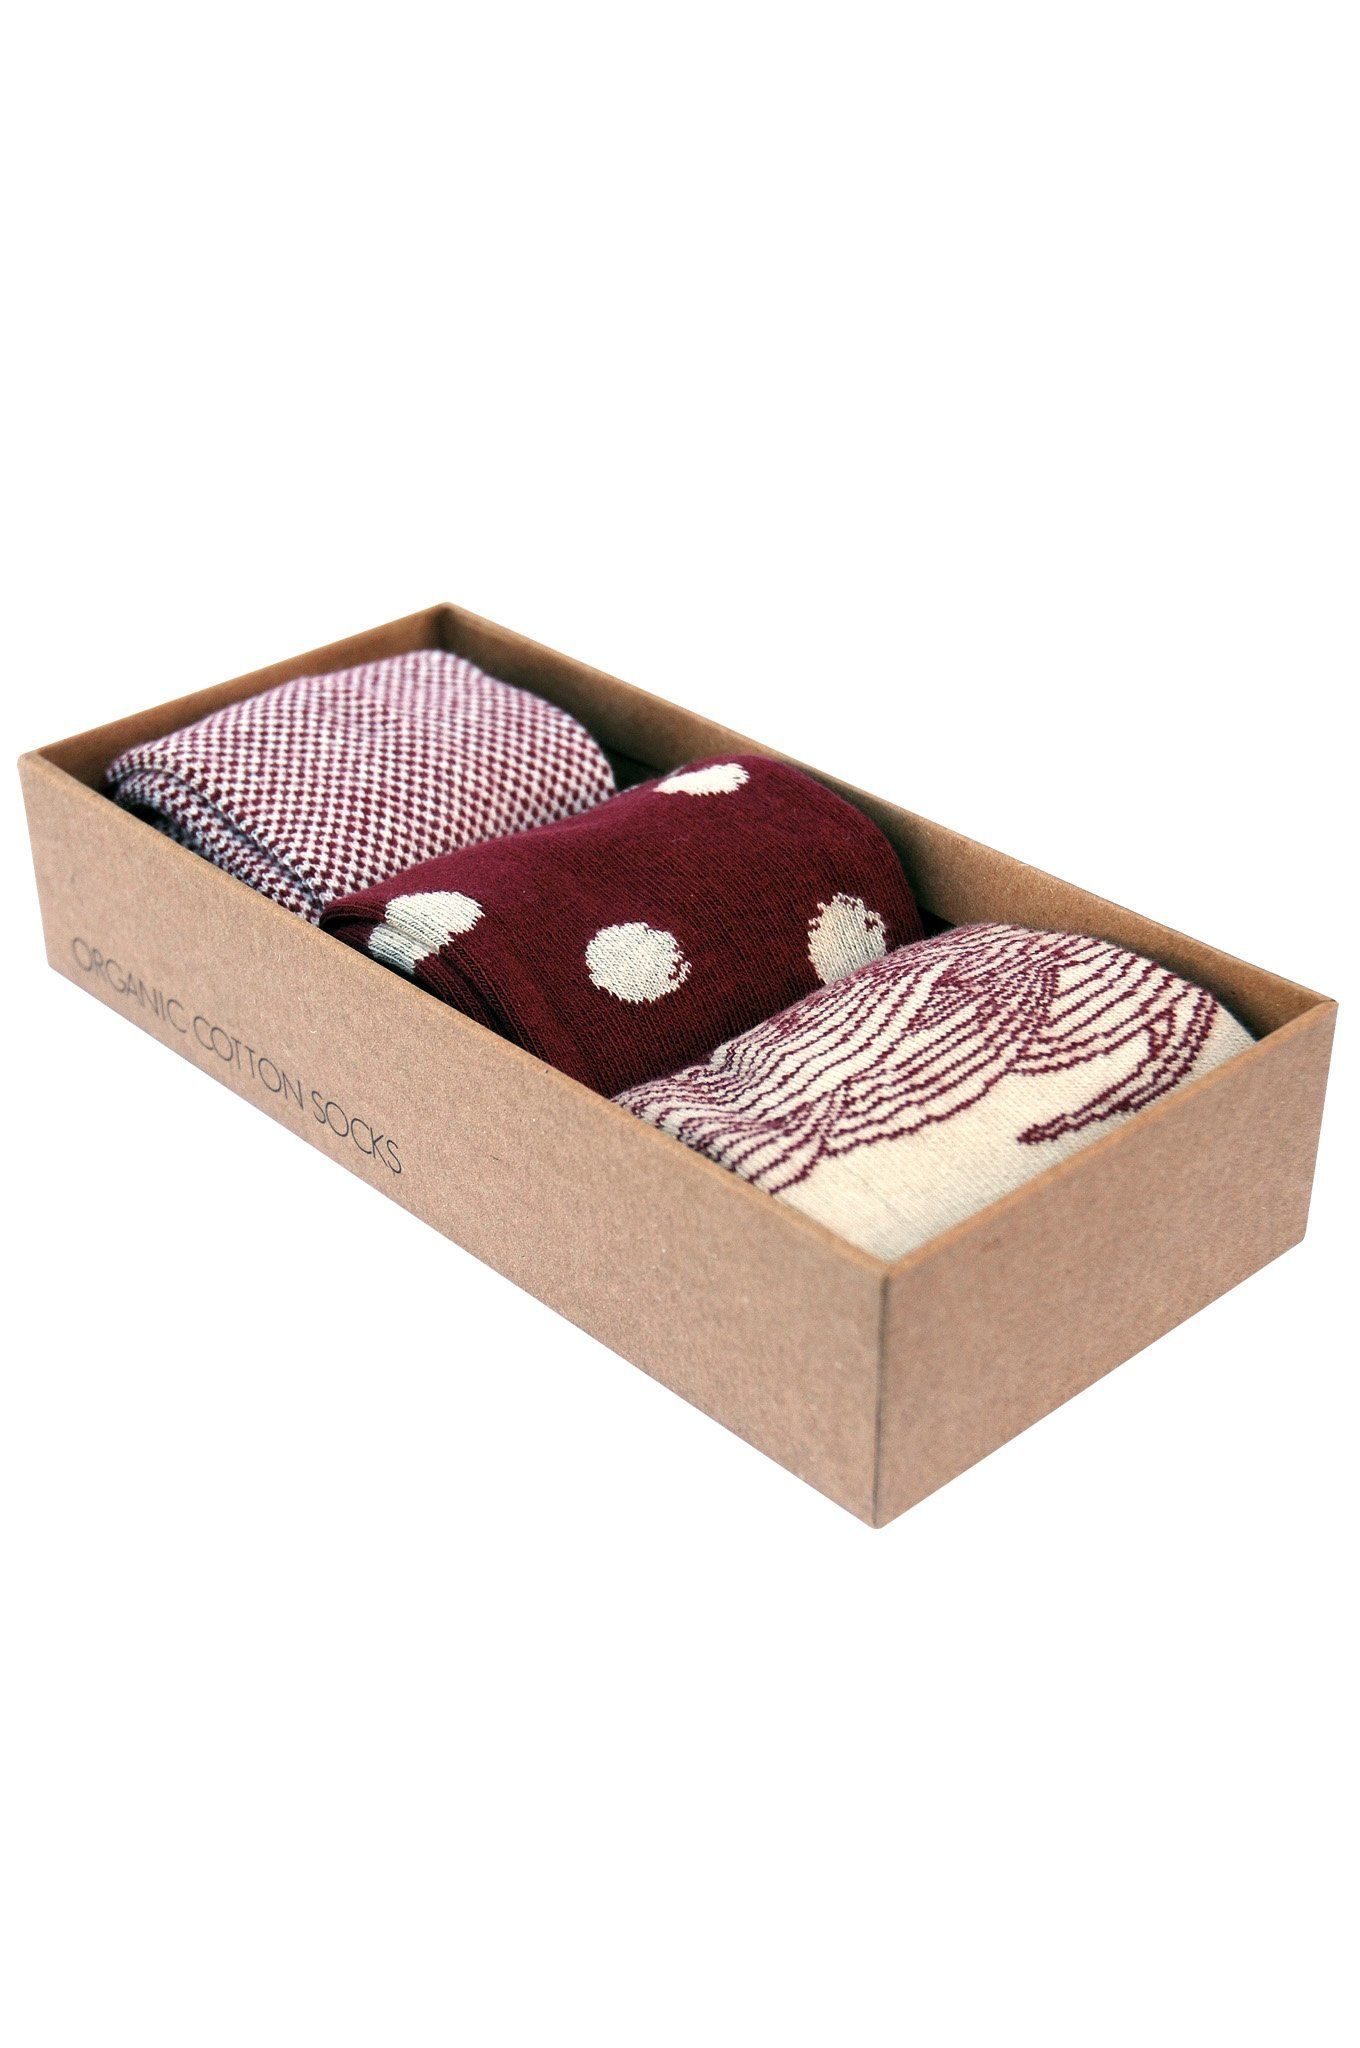 DOT WAVE Box Assorted Organic Cotton Socks Set - Komodo Fashion